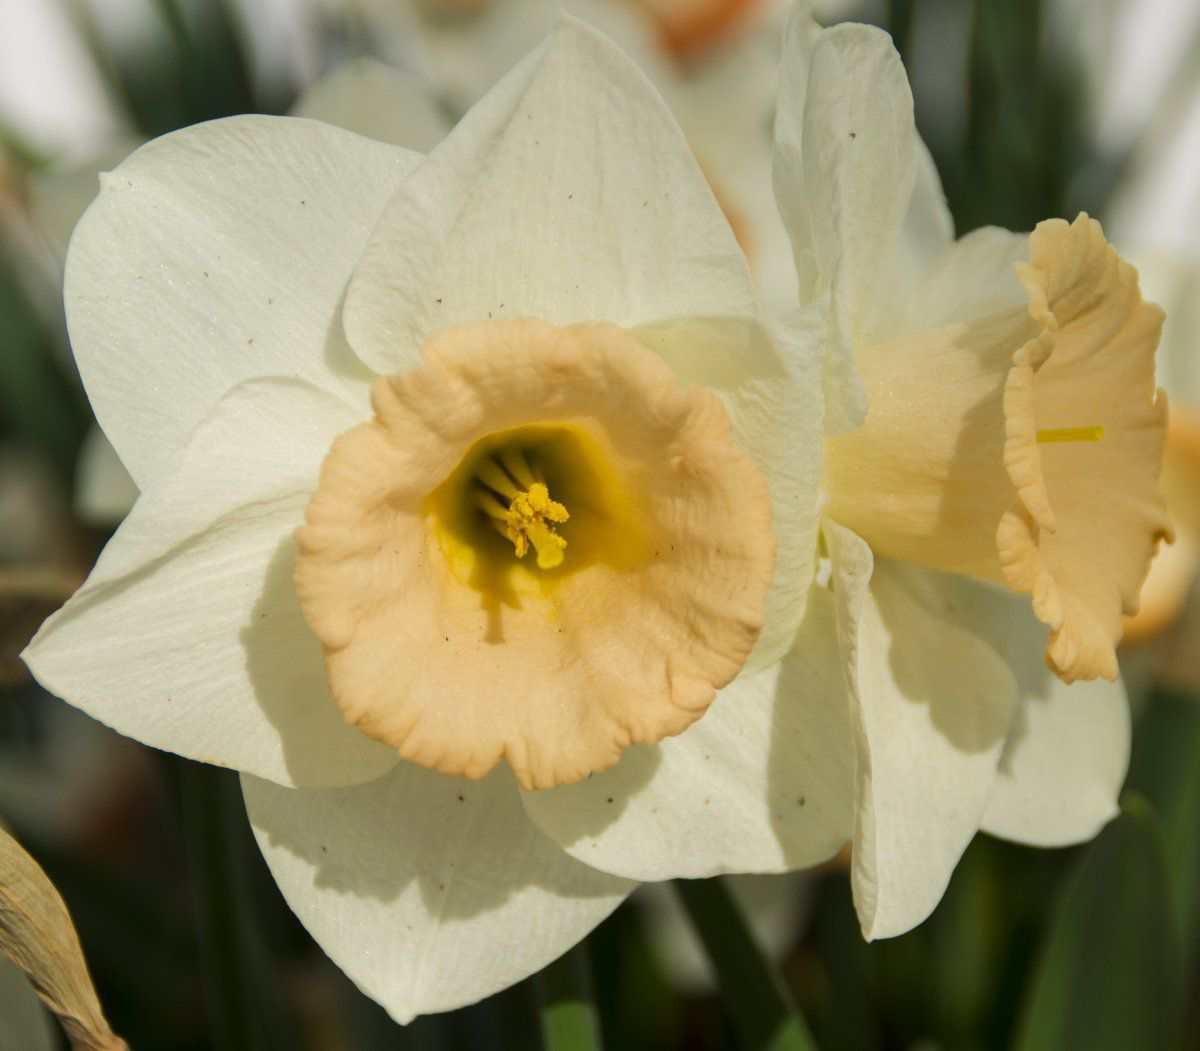 2014-05-04 Narcissus 'Pink Large Cupped Passionale (close-up).jpg